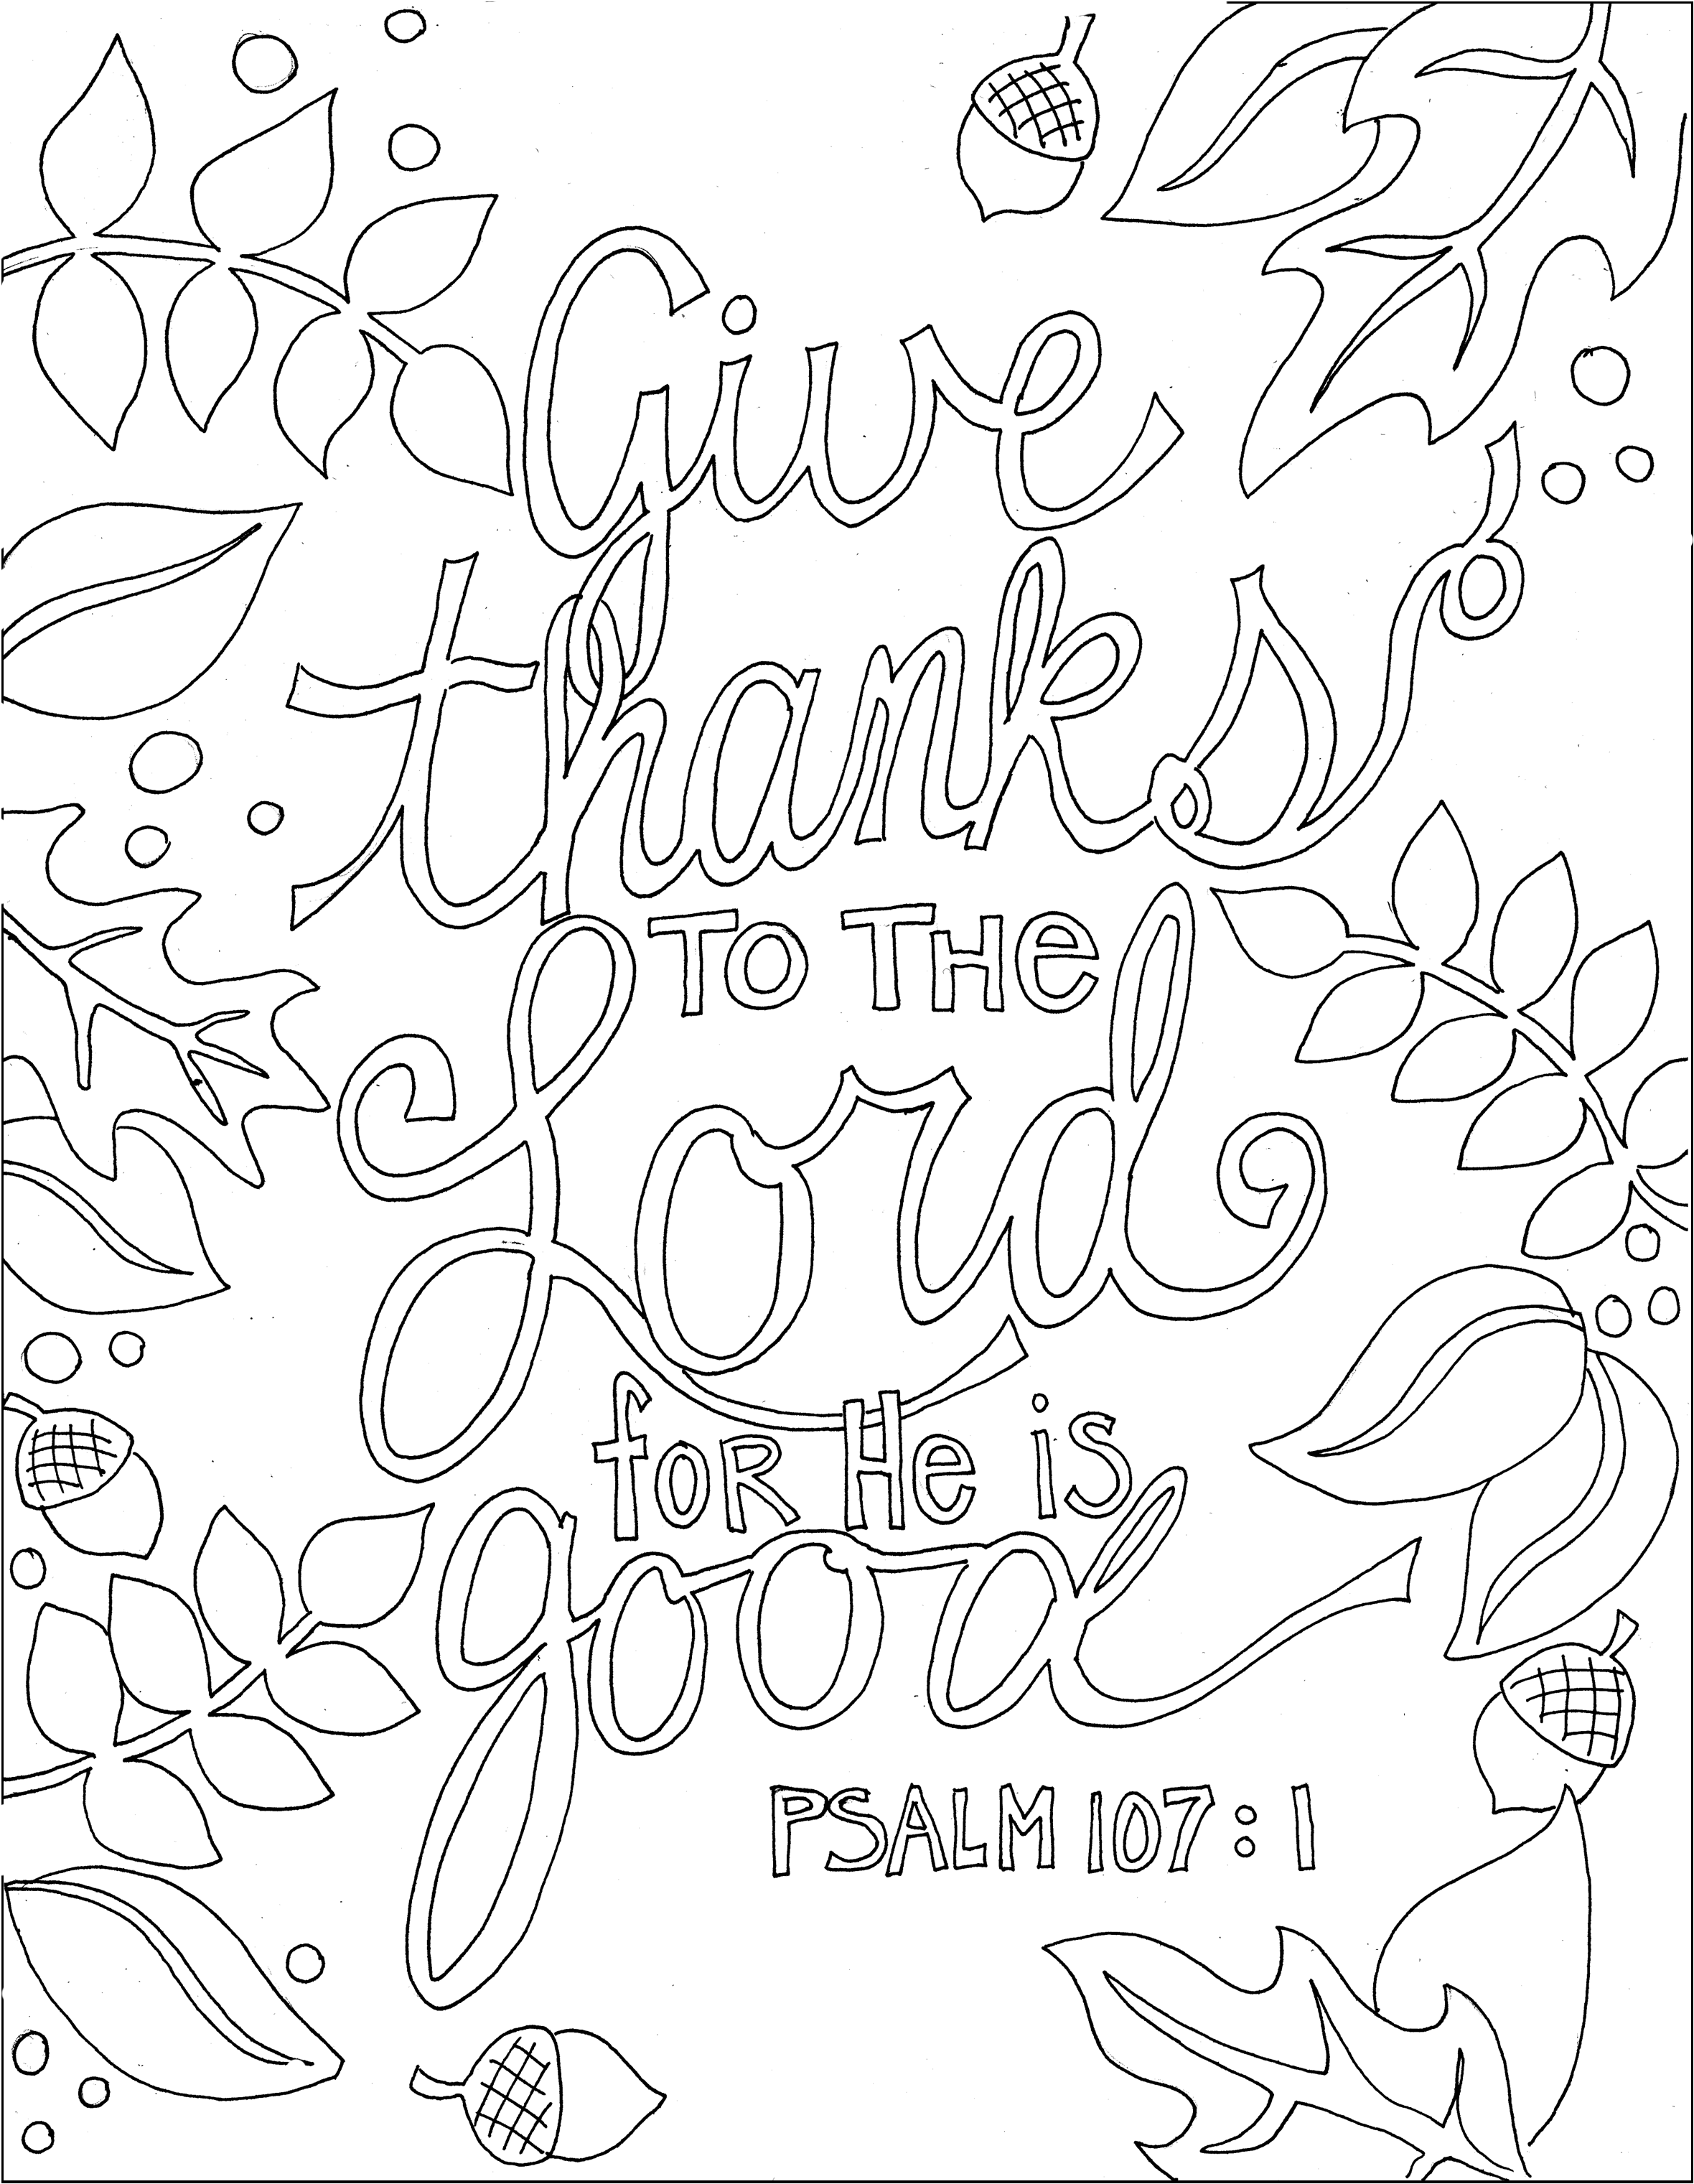 Ps 107.1 and many other printable Bible verse coloring pages | Adult ...